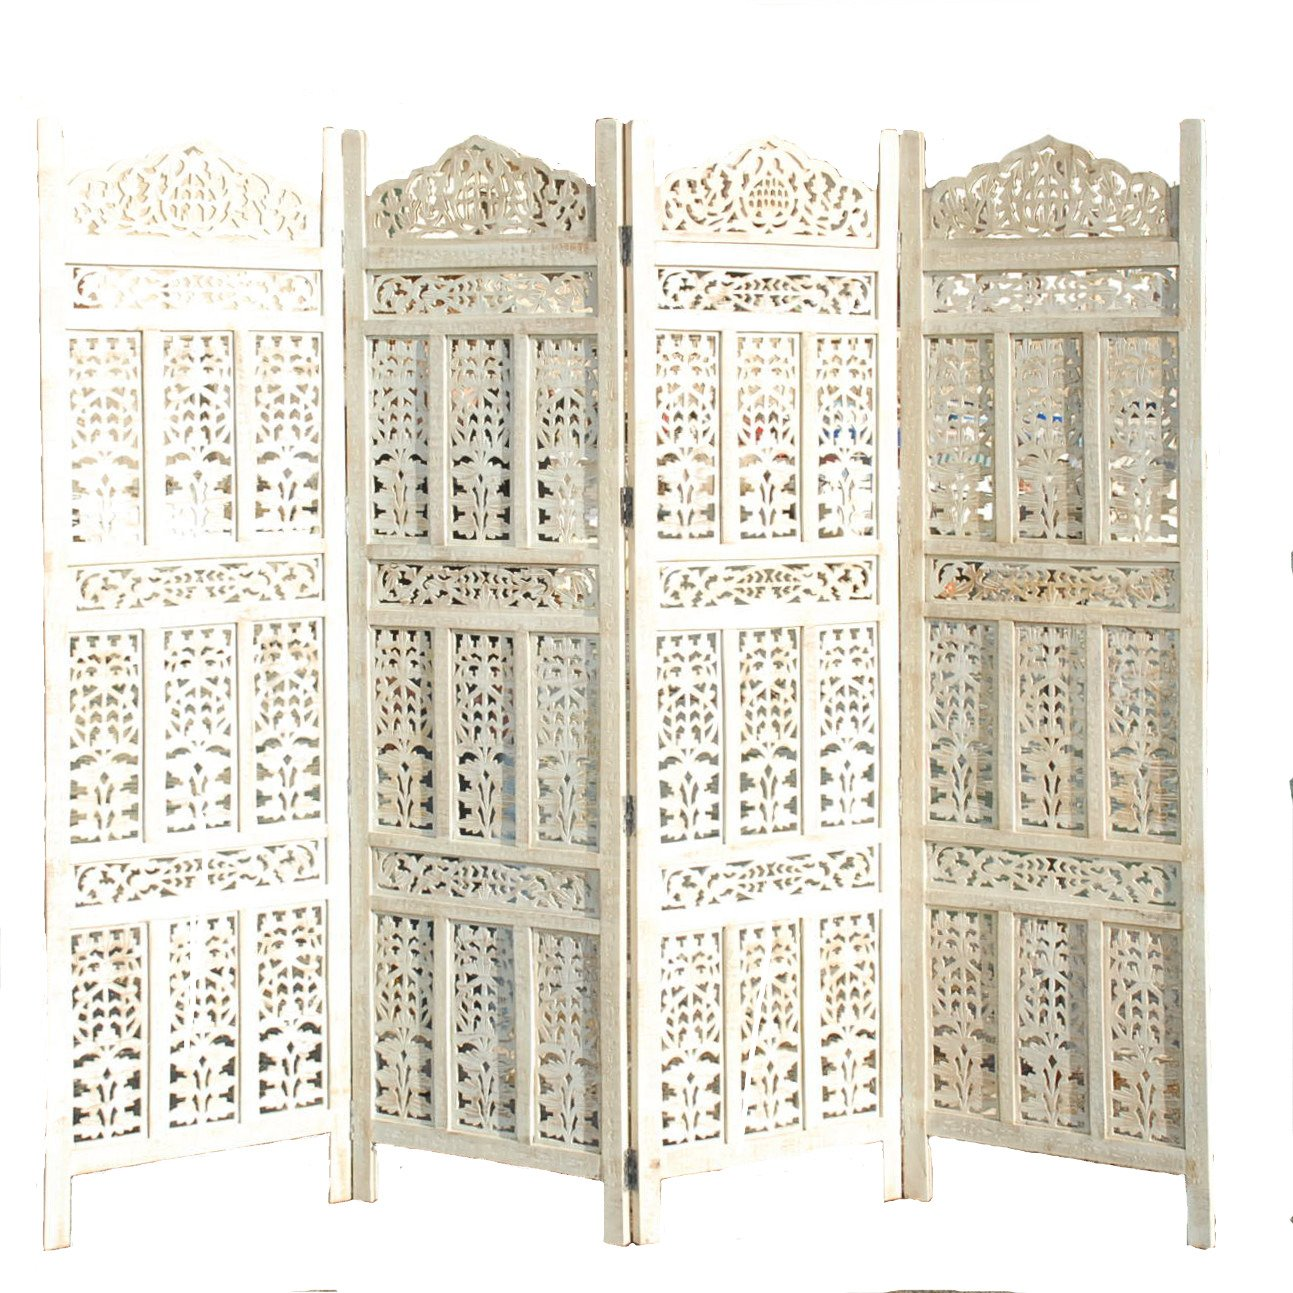 11IMPORTEXPORT.COM 4 PANEL SCREEN ROOM DIVIDER WOOD PARAVENT 183x50 CM PER PANEL 202 CM WIDE OPEN DESIGN INDIAN HAND CARVED WOODEN KW